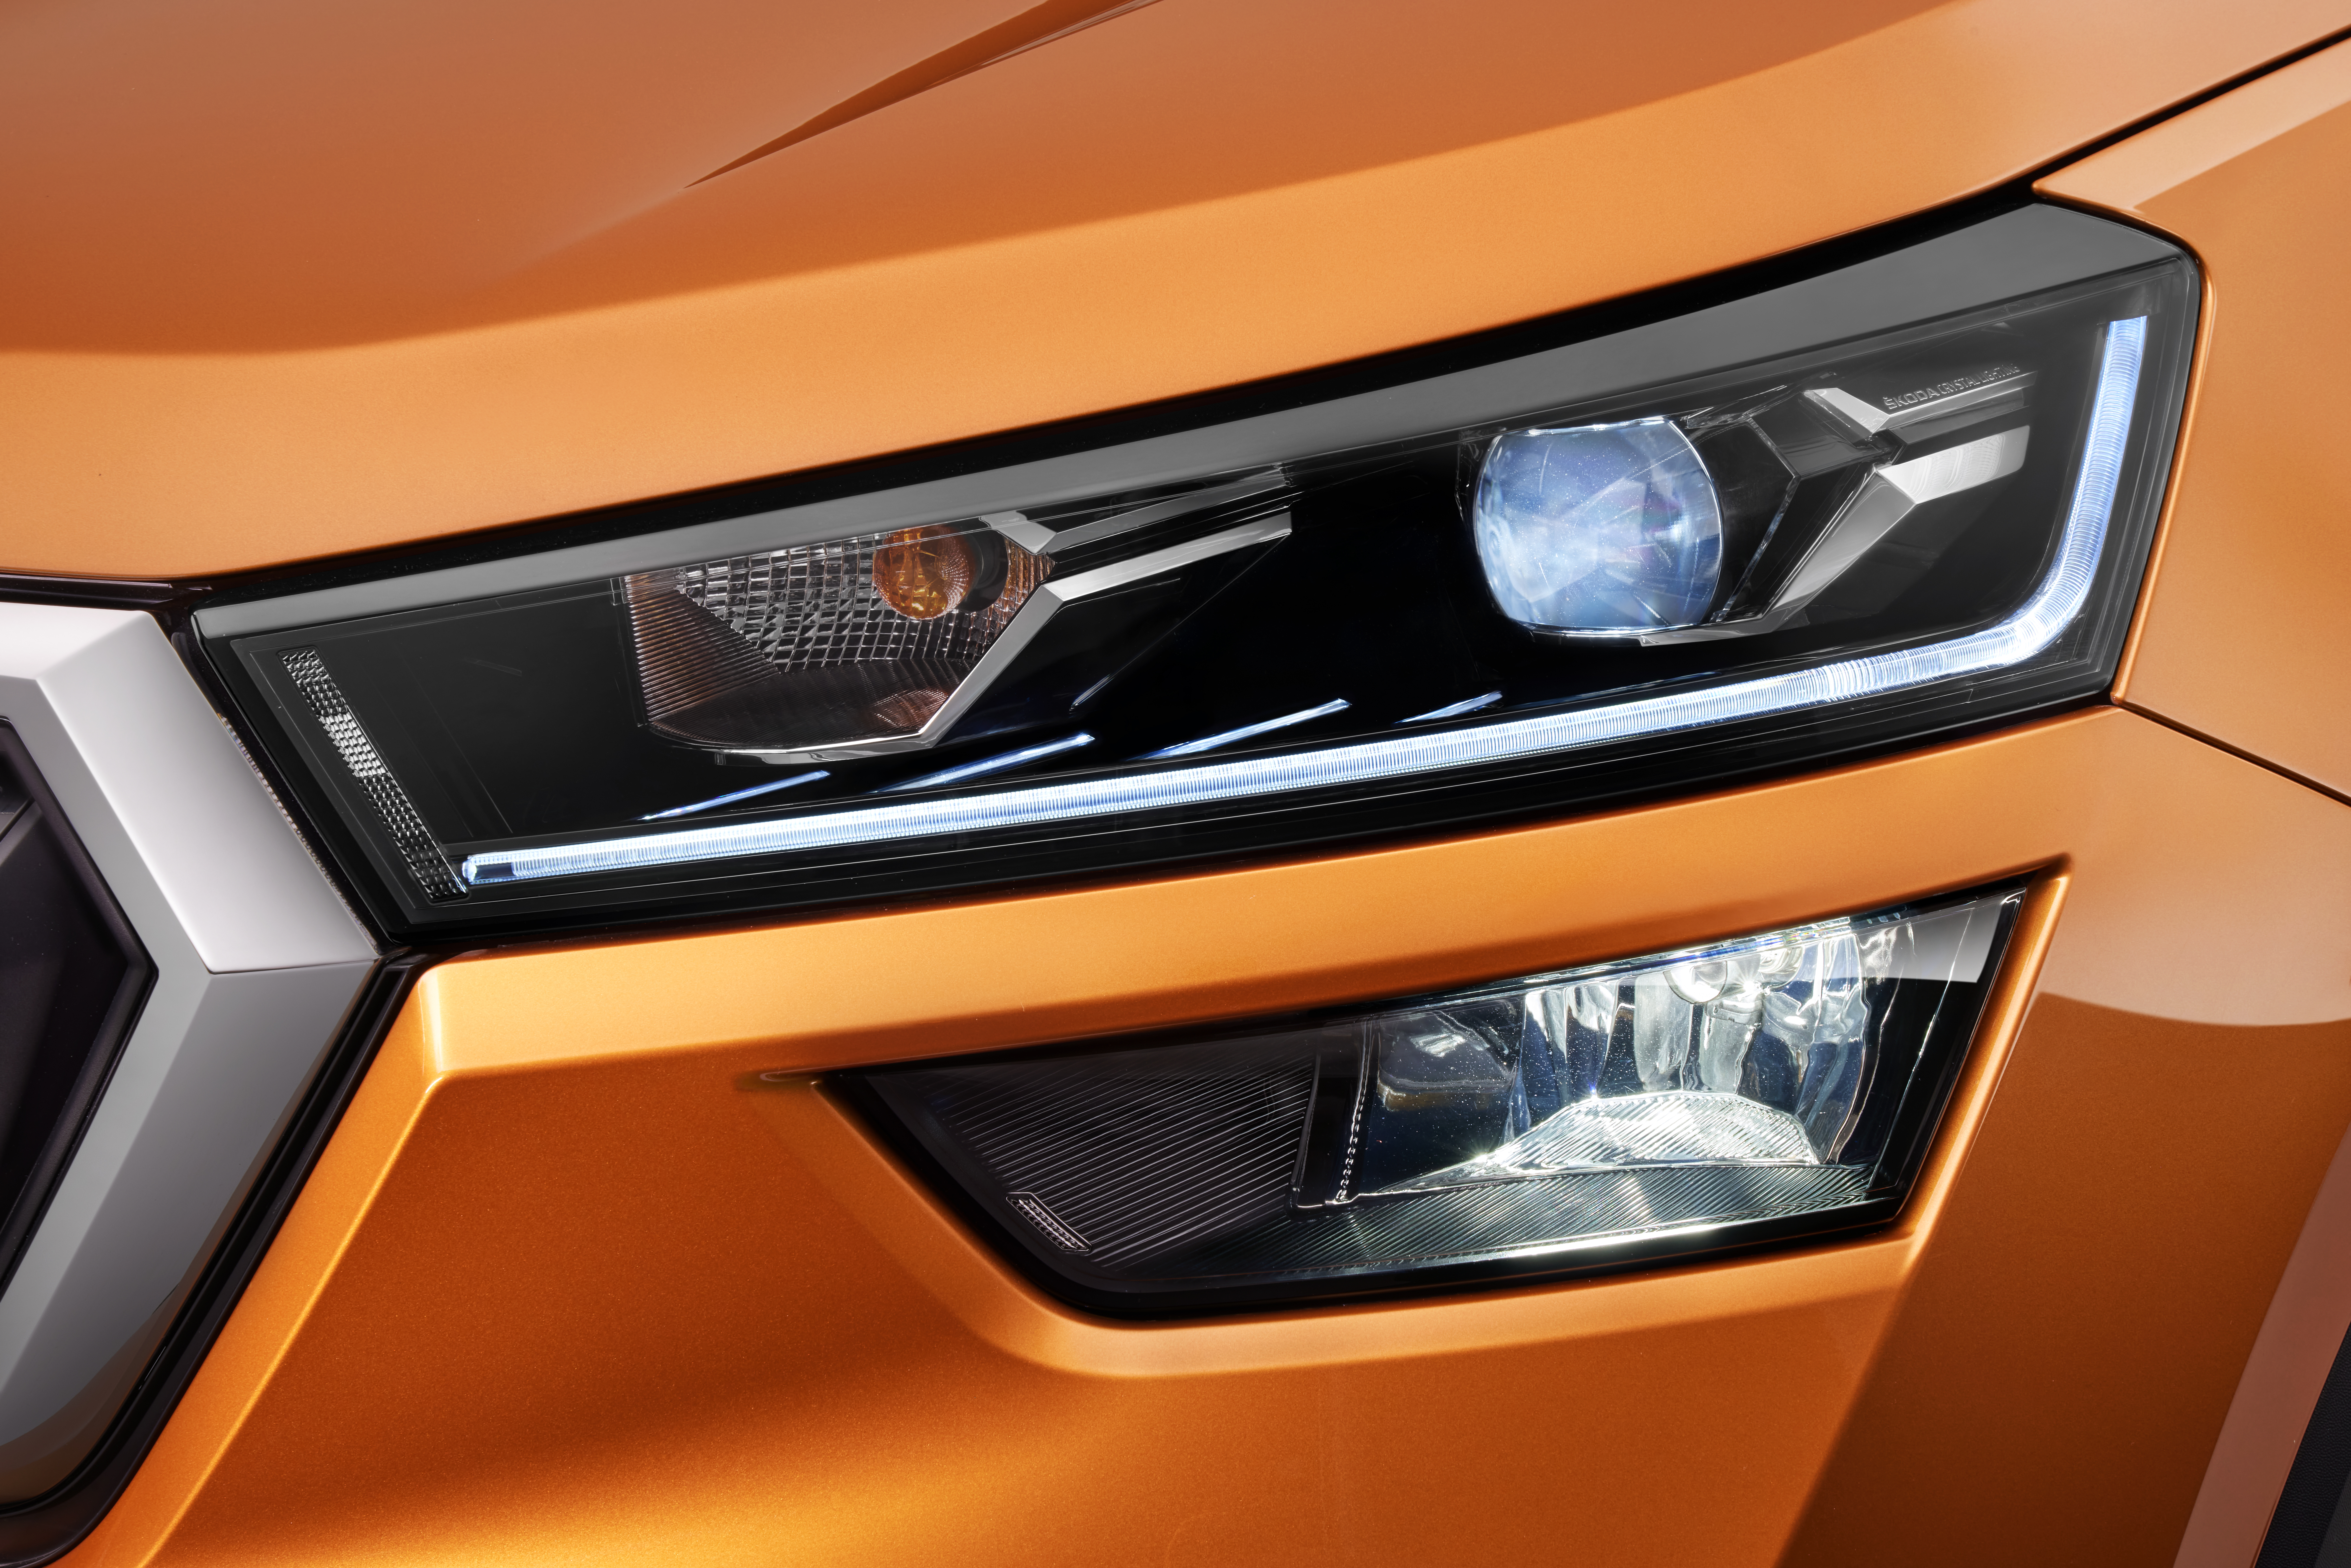 From the Ambition trim upwards, the KUSHAQ has a set of LED headlights with ŠKODA's typical crystalline design.